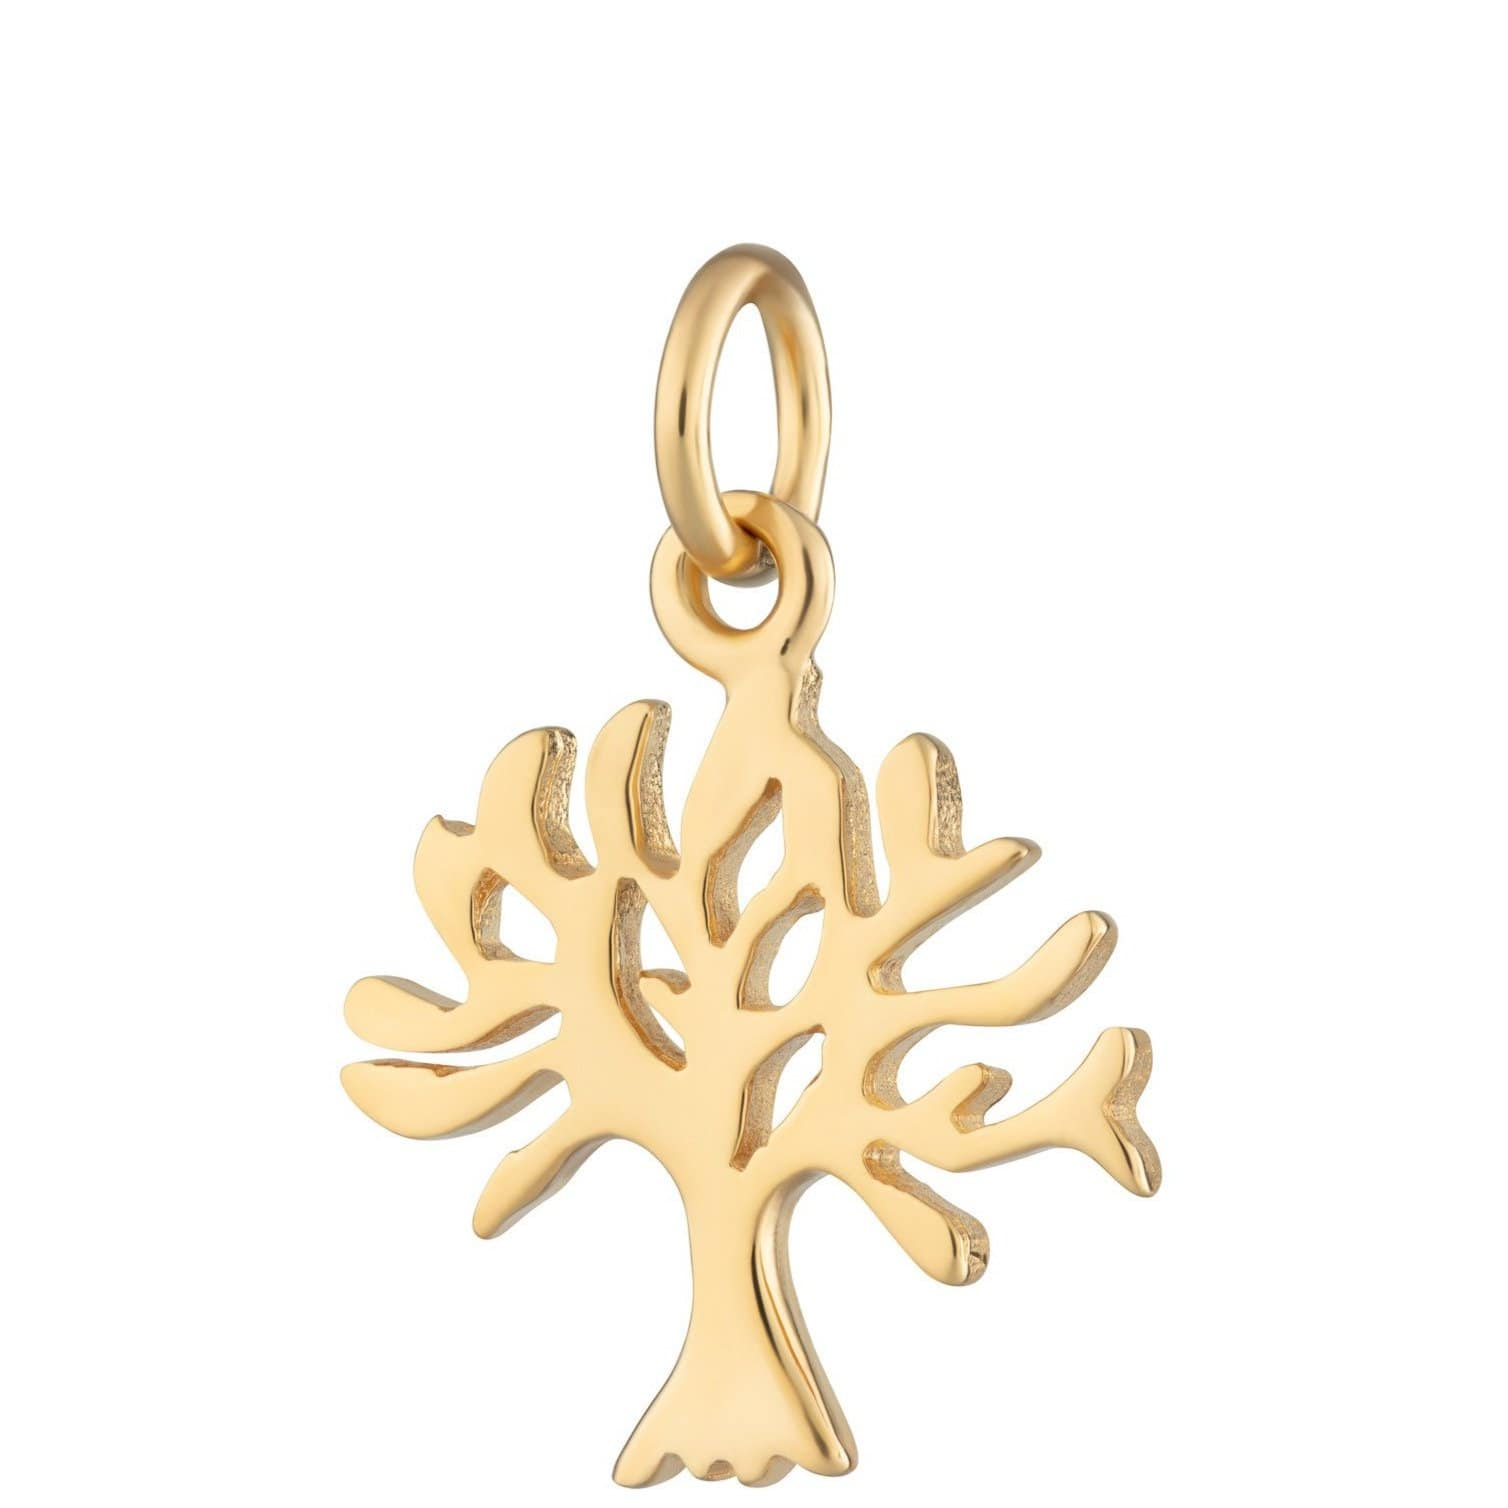 Gold Plated Tree Charm by Lily Charmed